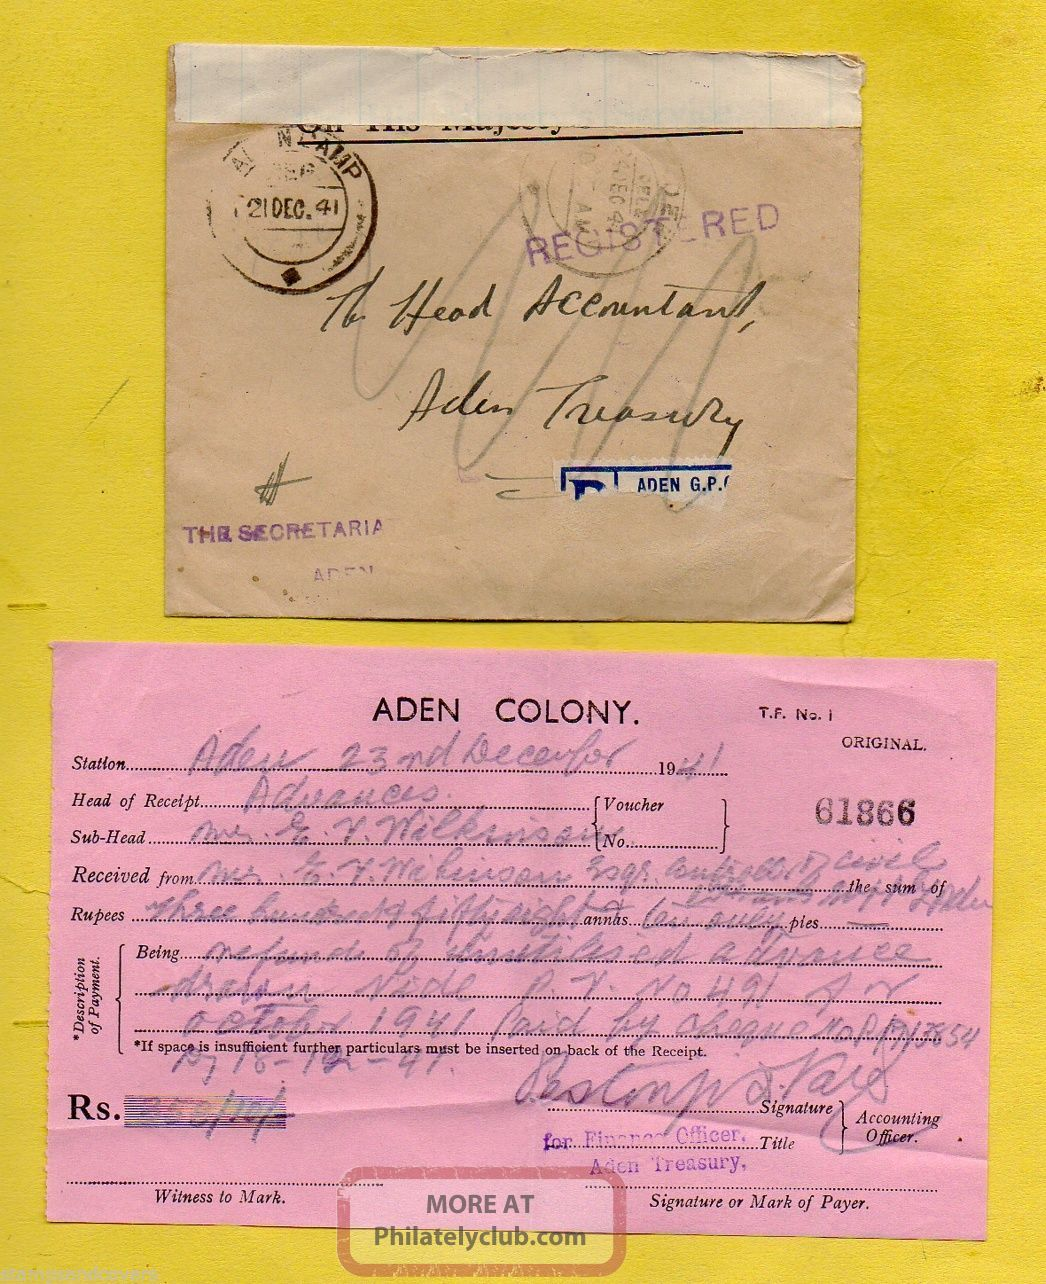 Aden Colony 1941 Aden Camp Ohms Registered Cover - Aden Treasury,  Reused+contents British Colonies & Territories photo